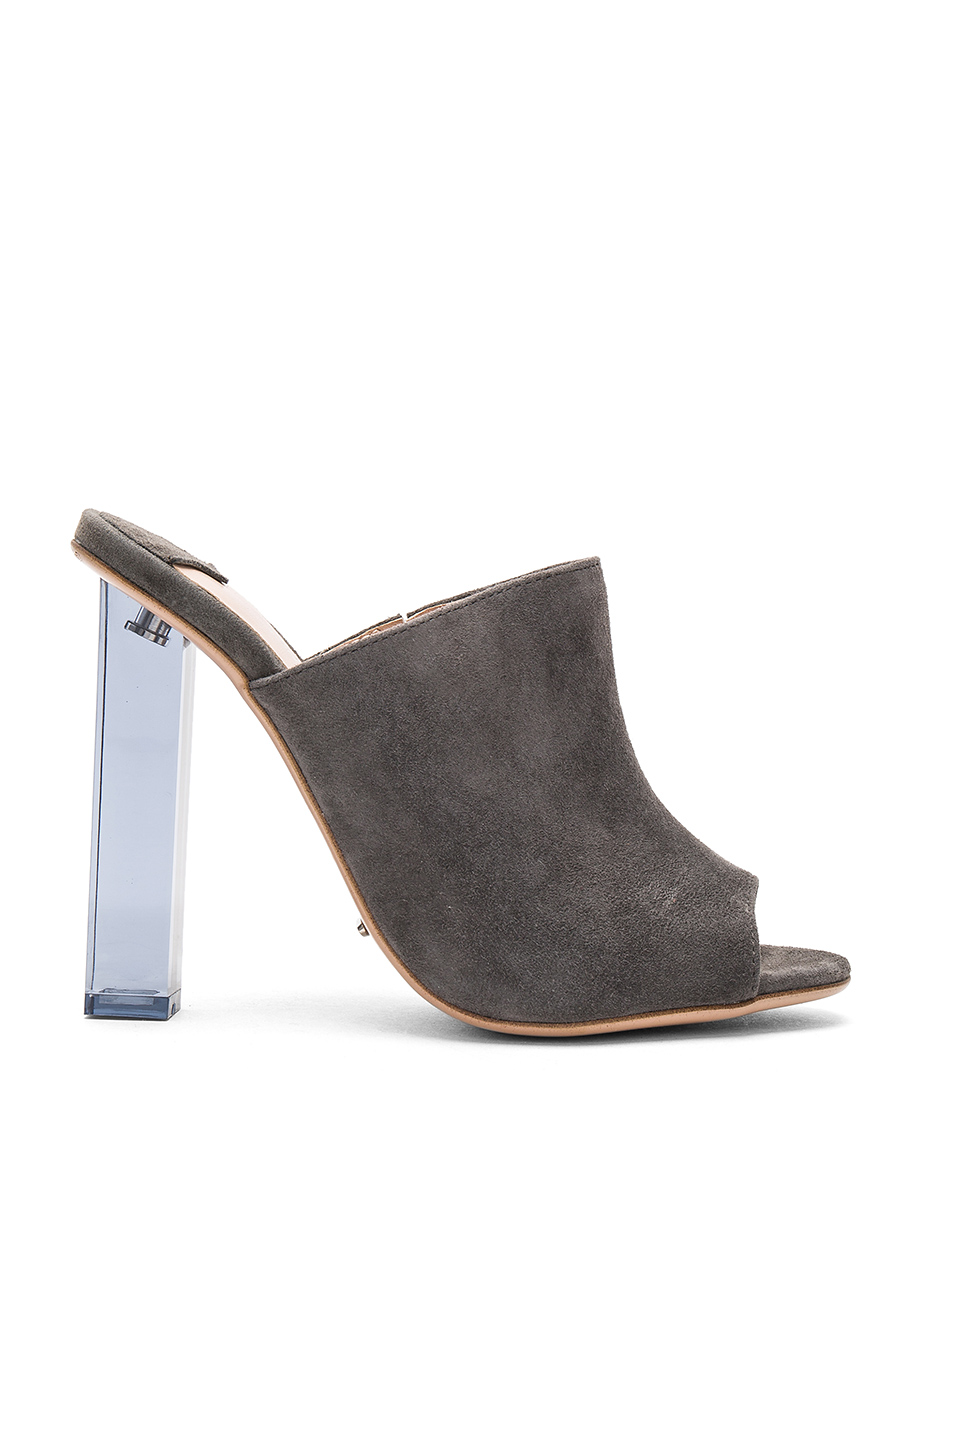 Tony Bianco Kitzy Mule in Wolf Suede